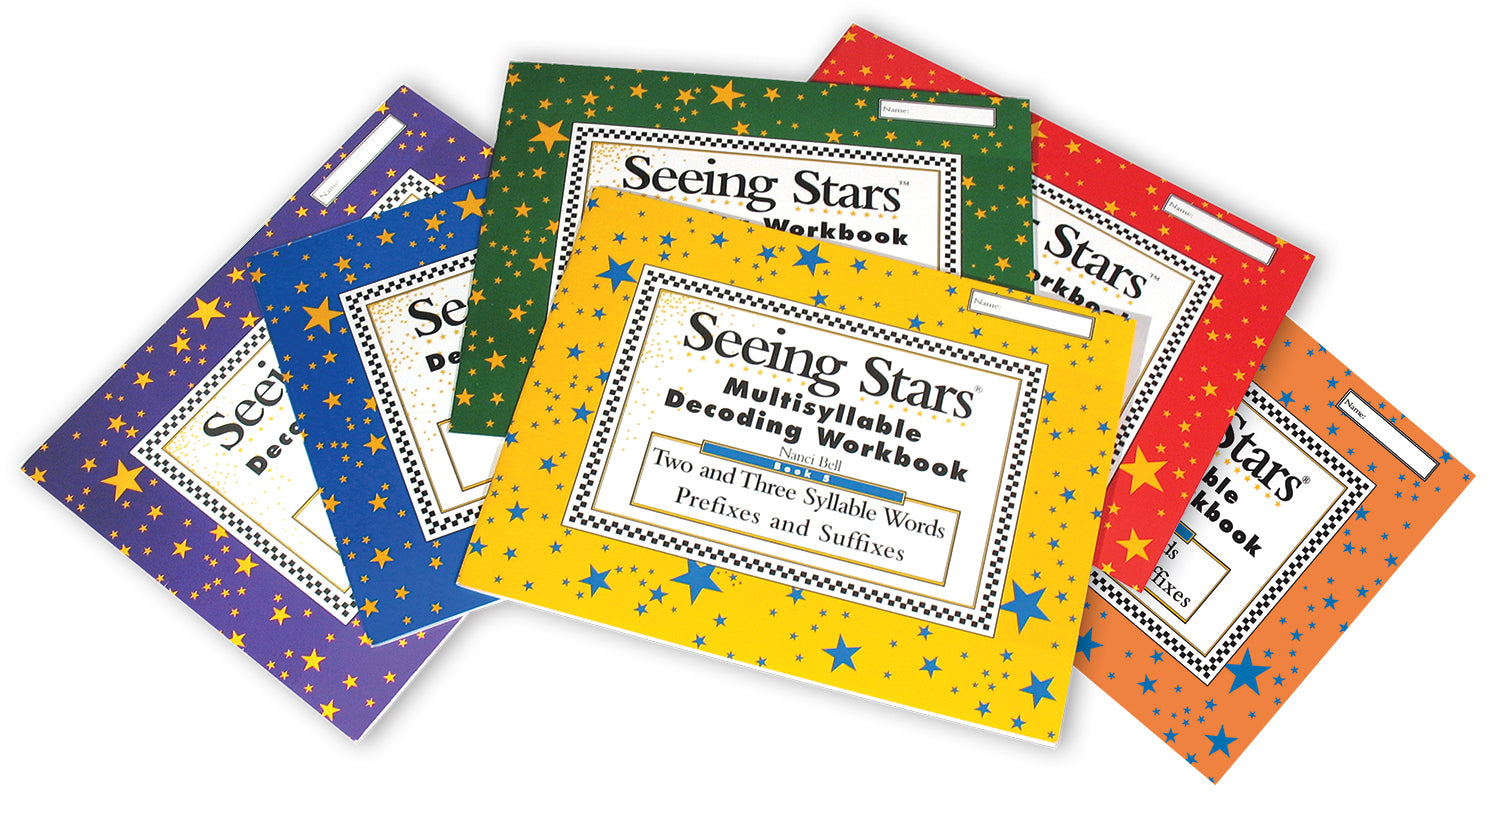 Seeing Stars® Decoding Workbooks